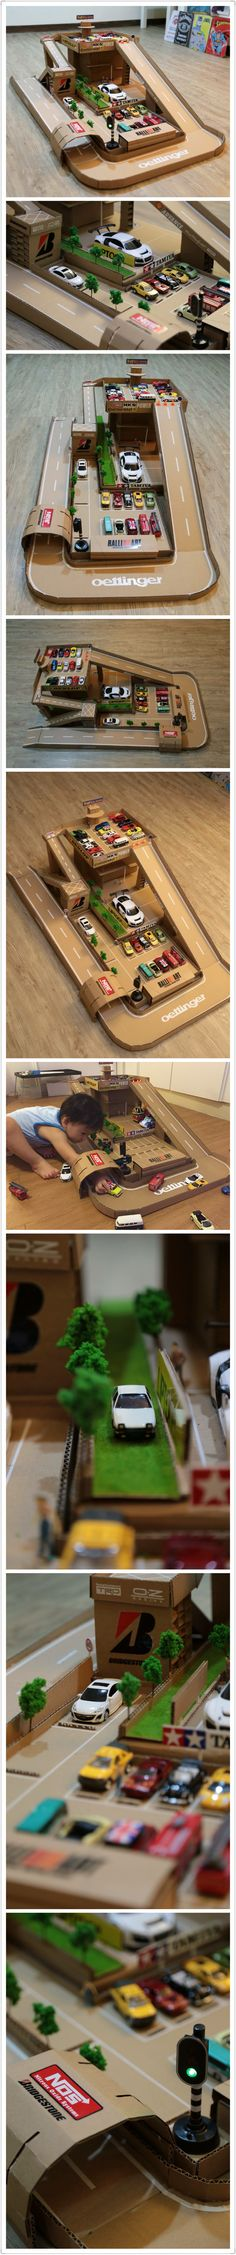 DIY toy car garage/car station/parking lots for my son.- DIY toy car garage/car station/parking lots for my son.Hope he won& de… DIY toy car garage/car station/parking lots for my son.Hope he won& destroy it too soon… - Projects For Kids, Diy For Kids, Crafts For Kids, Diy Projects, Toys For Boys, Kids Toys, Diy Toys Car, Cardboard Toys, Cardboard Playhouse